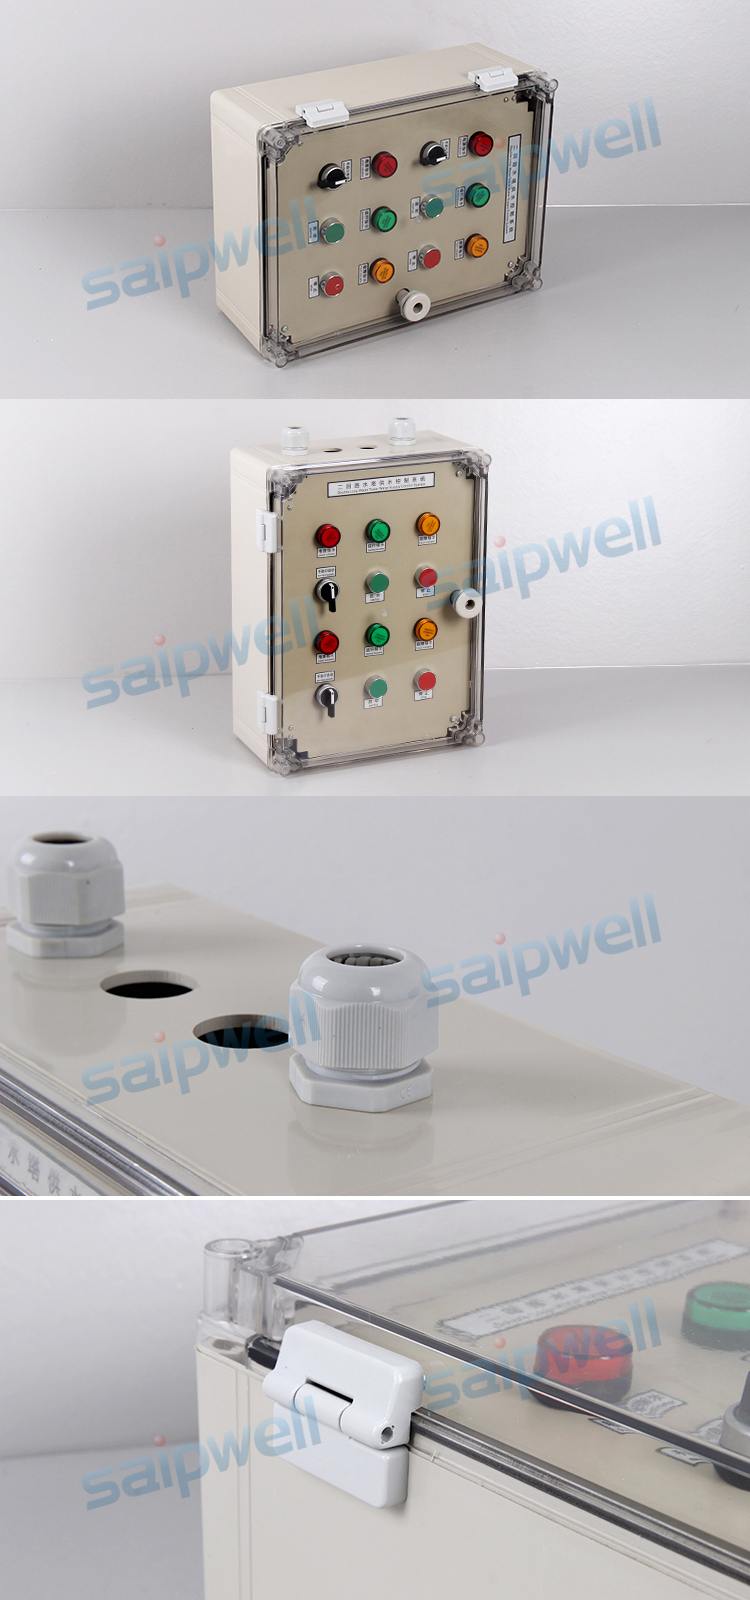 SAIP/SAIPWELL Double Loop Water Supply PC/ABS Control Box